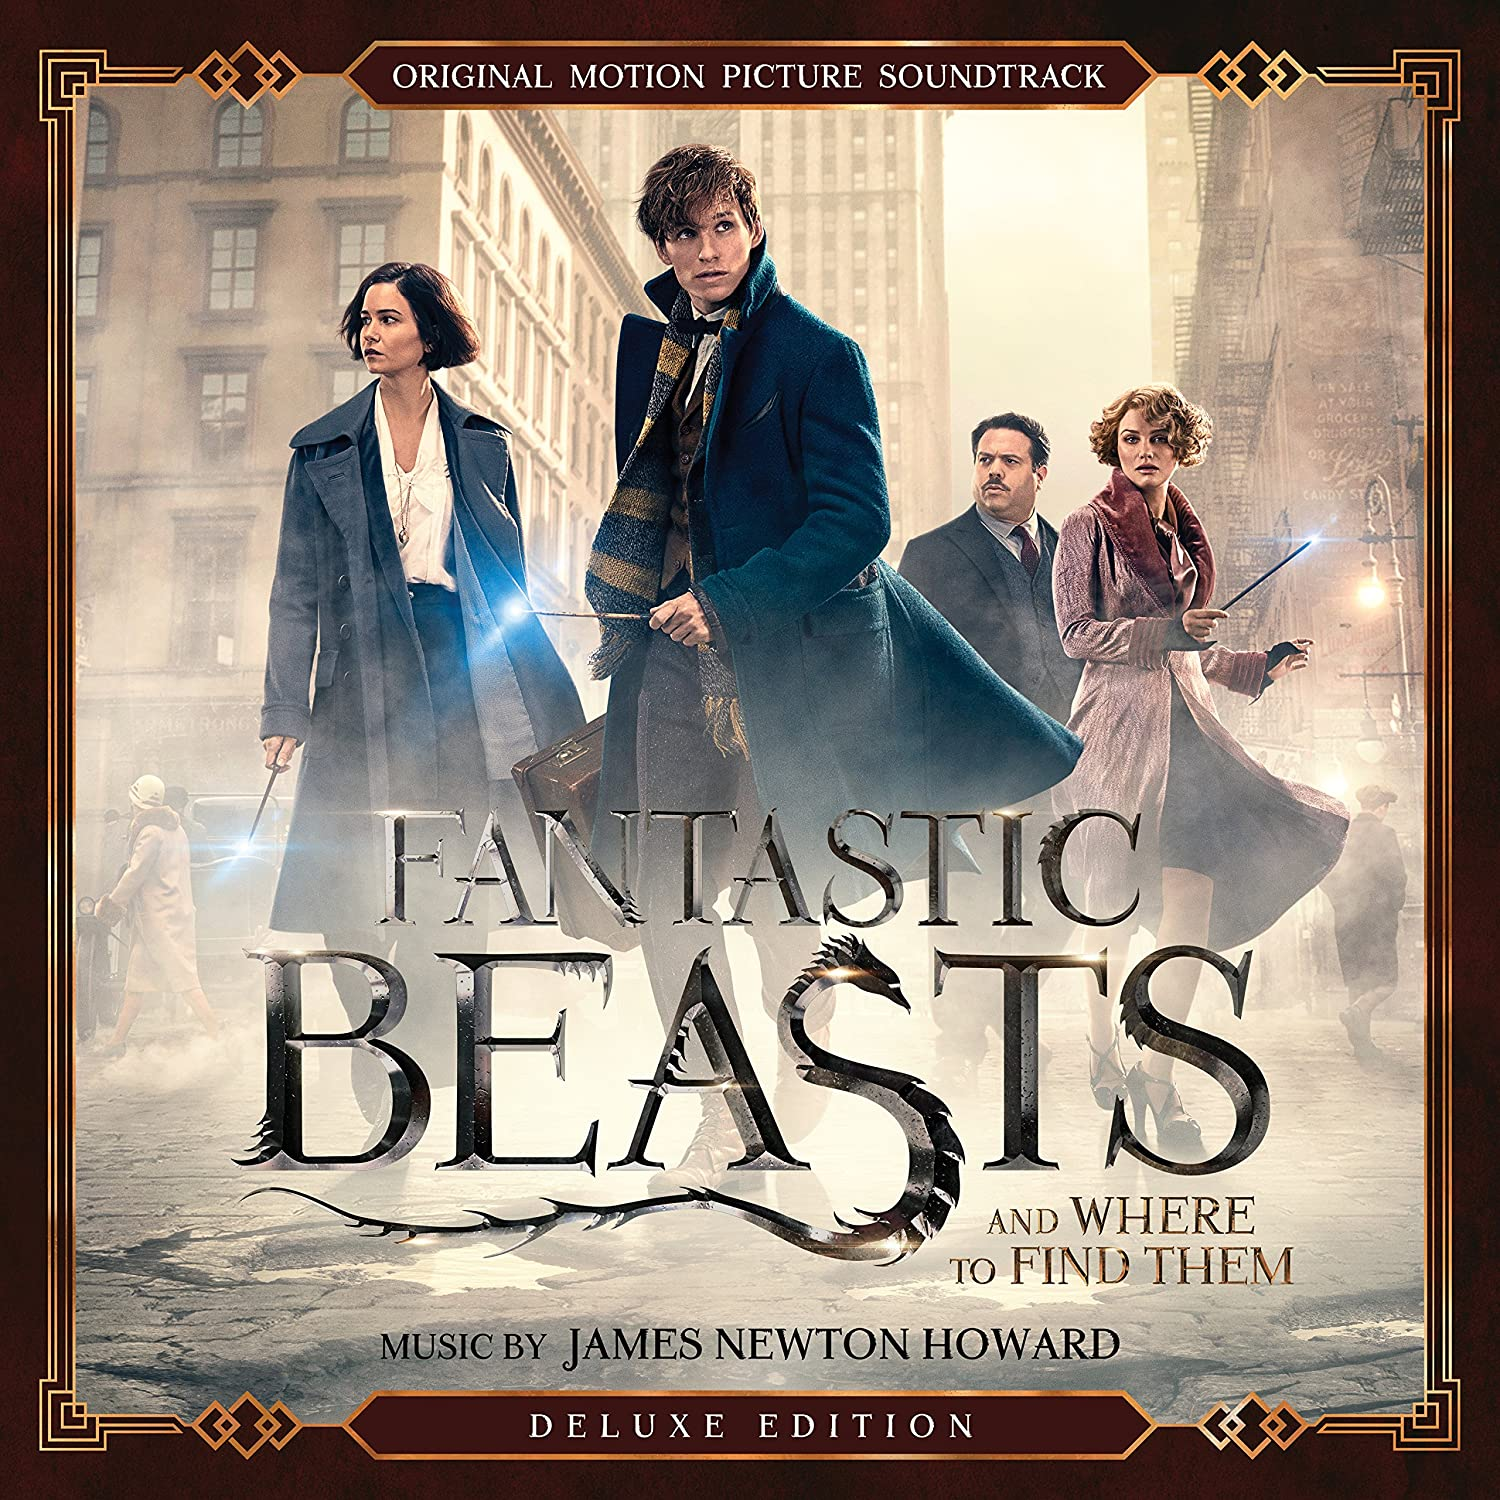 Fantastic Beasts And Where To Find Them Deluxe Edition O S T Fantastic Beasts And Where To Find Them Original Motion Picture Soundtrack Amazon Com Music